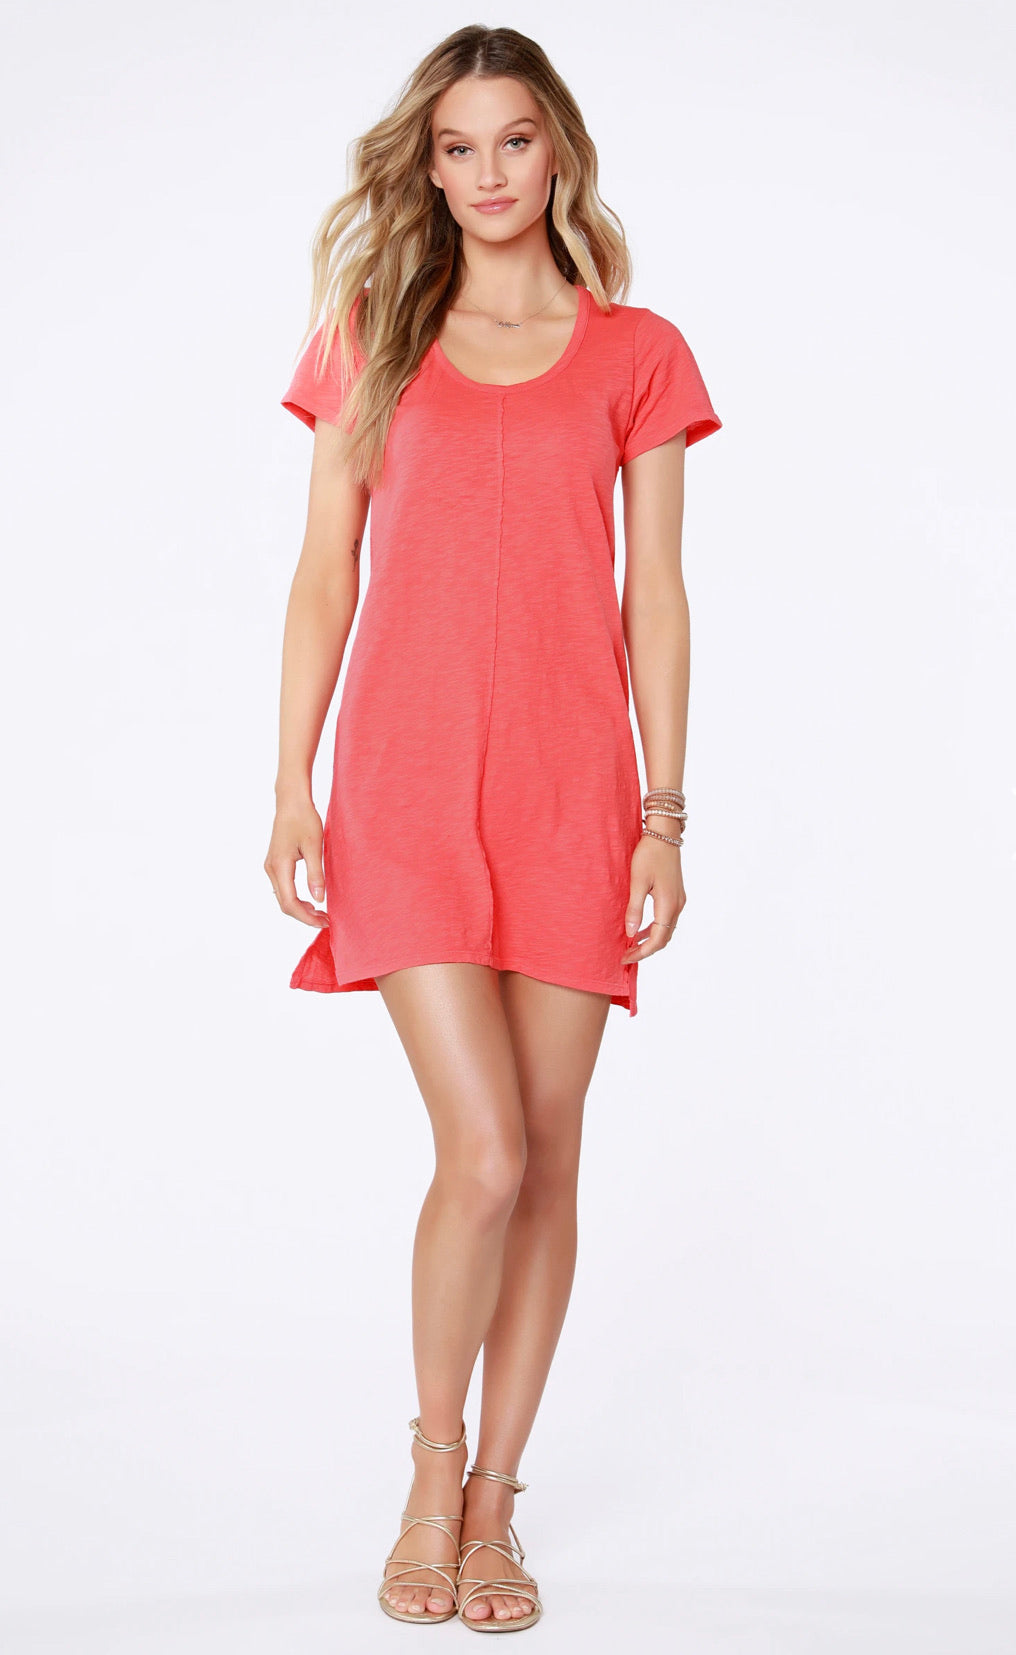 Short Sleeve T-shirt Dress